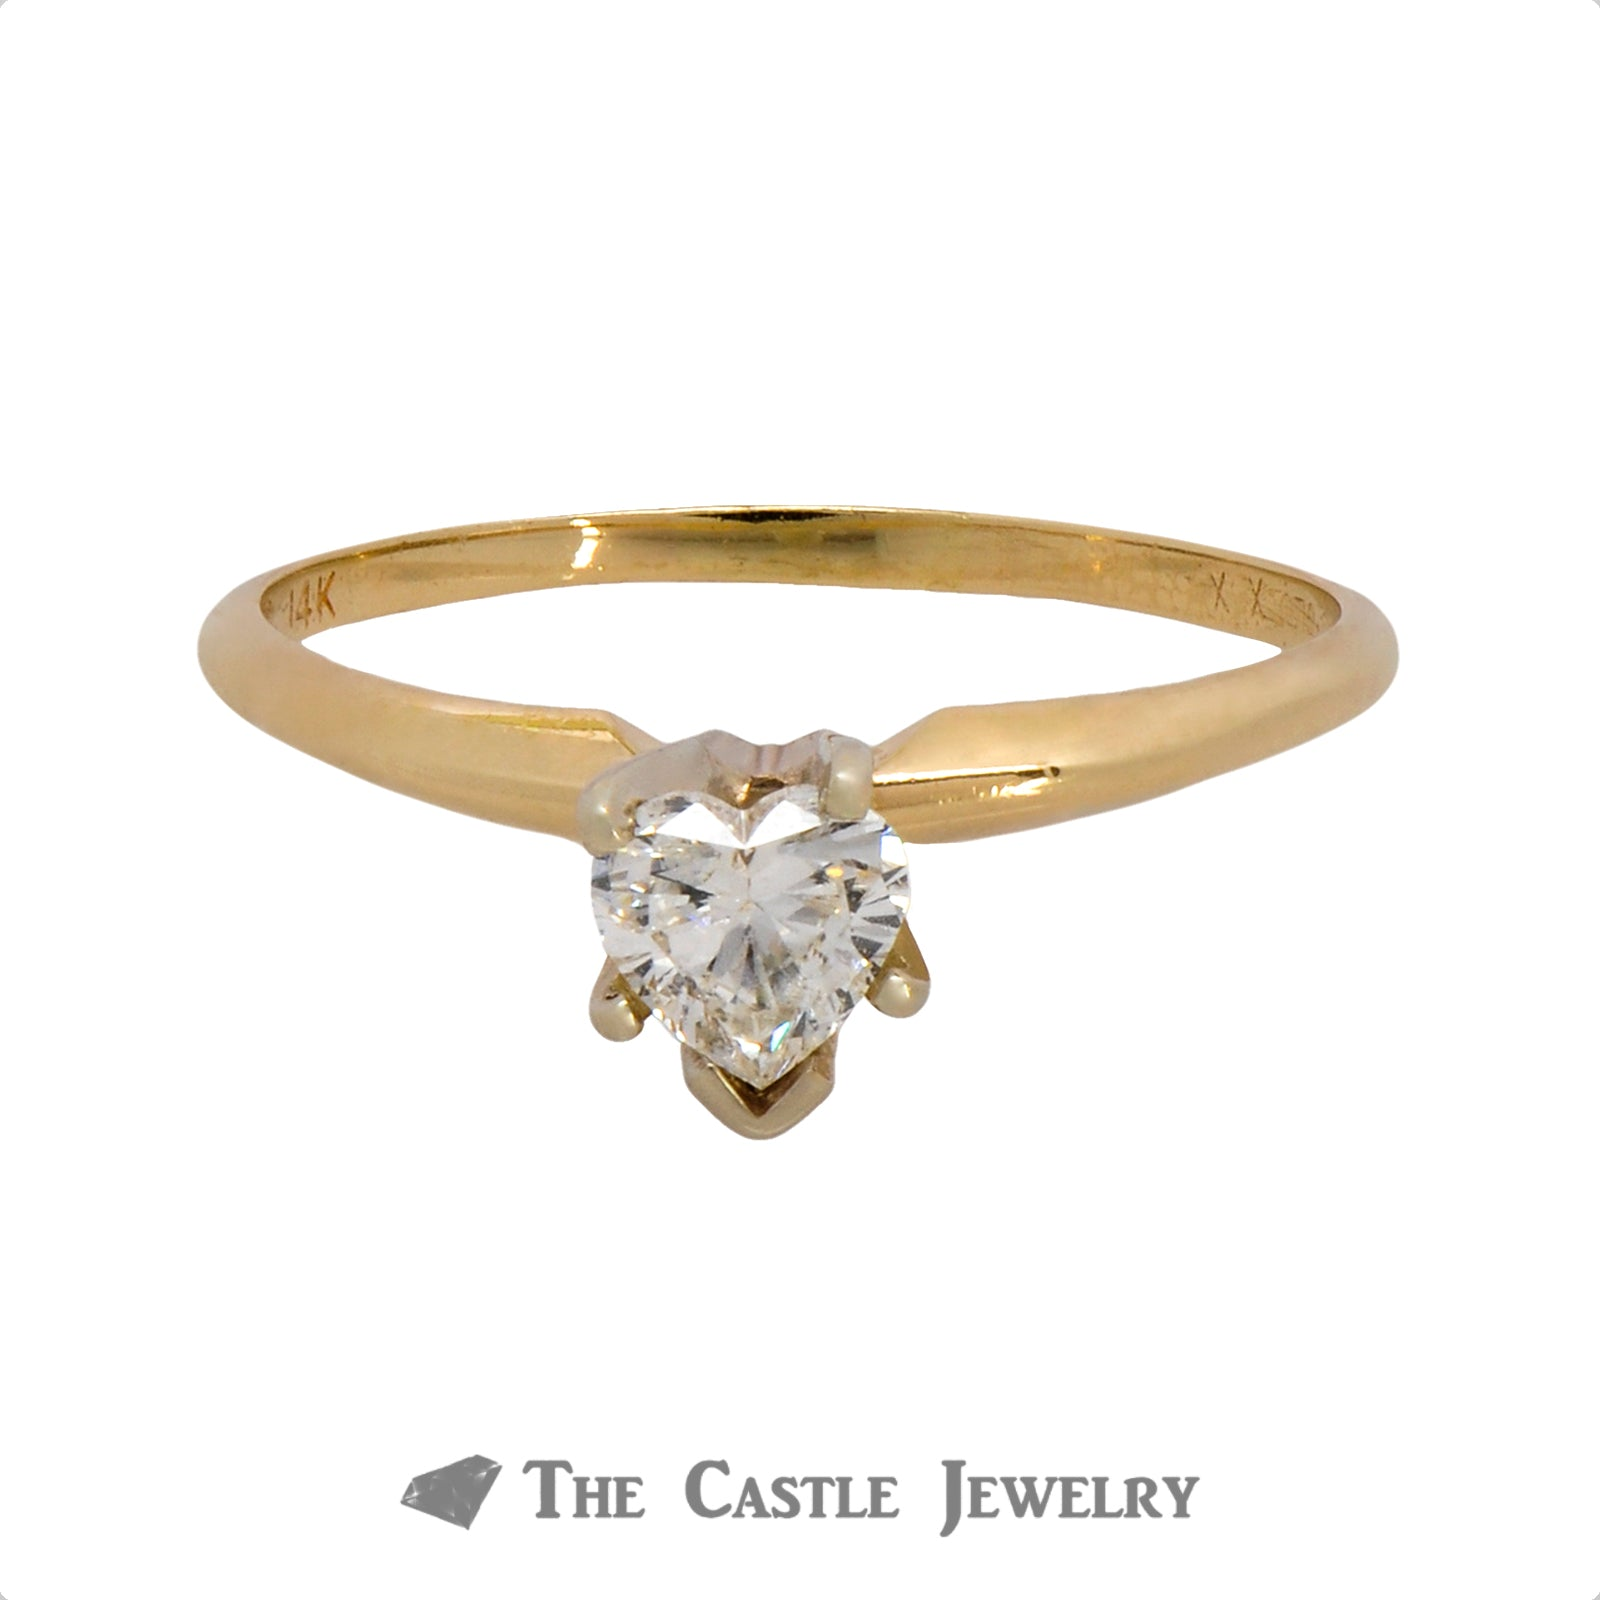 Heart Shaped 1/2 Carat Diamond Solitaire Ring in 14K Gold